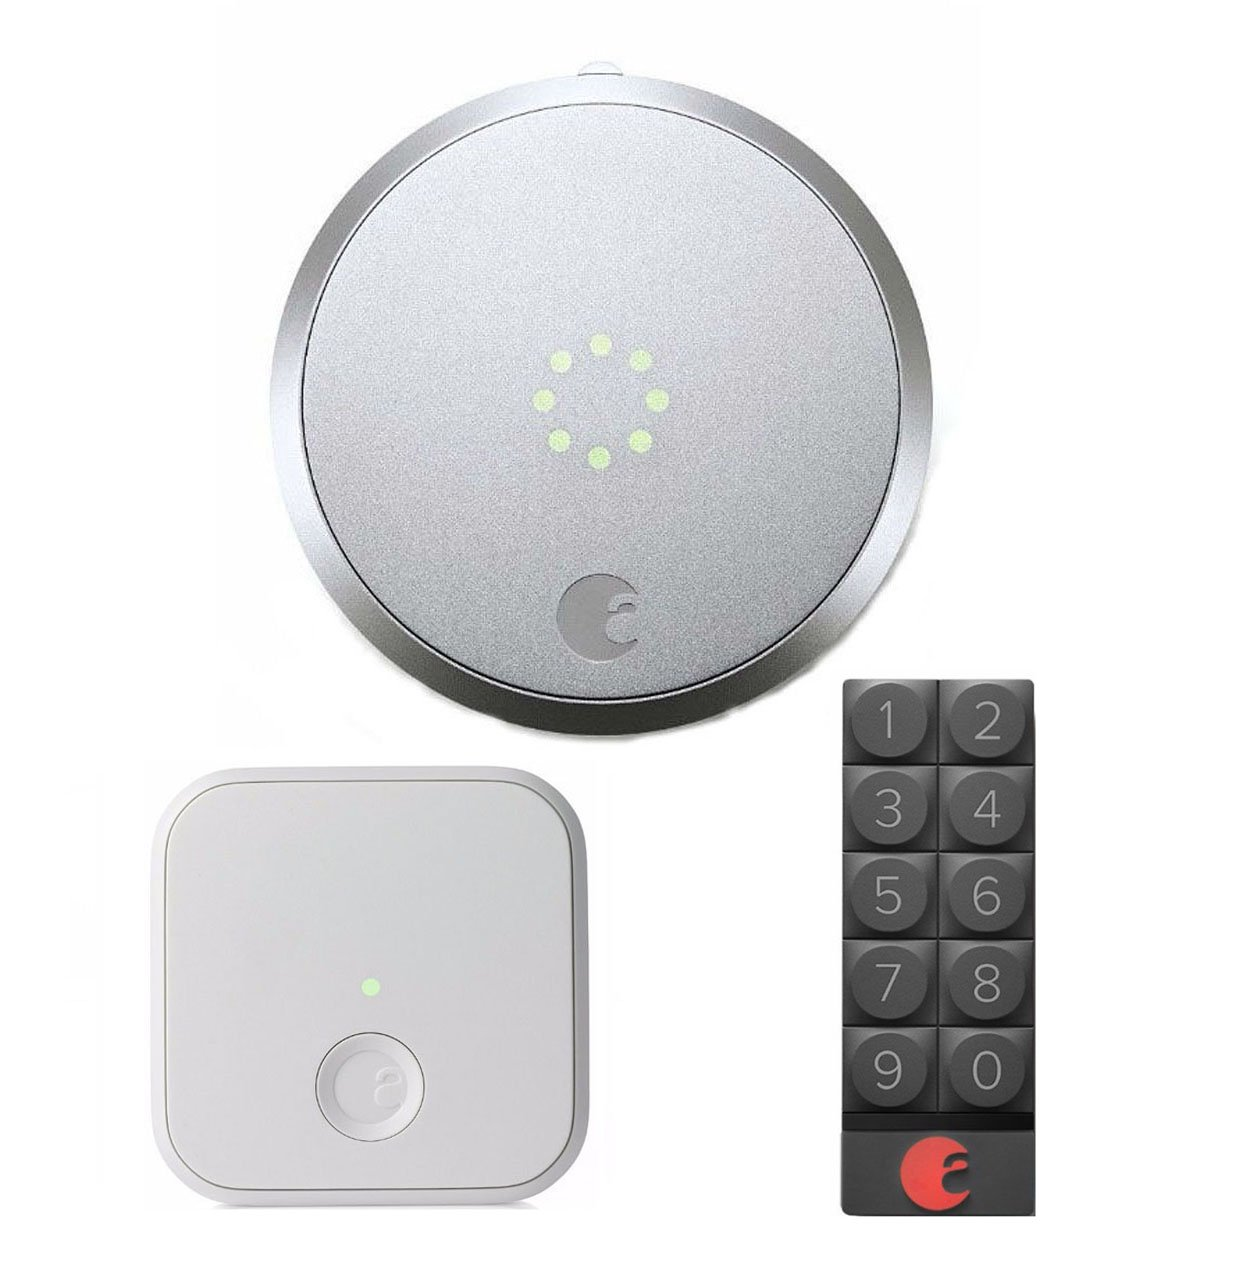 August Smart Lock In Silver, August Connect Wireless Receiver In White & Smart Keypad (Dark Gray)